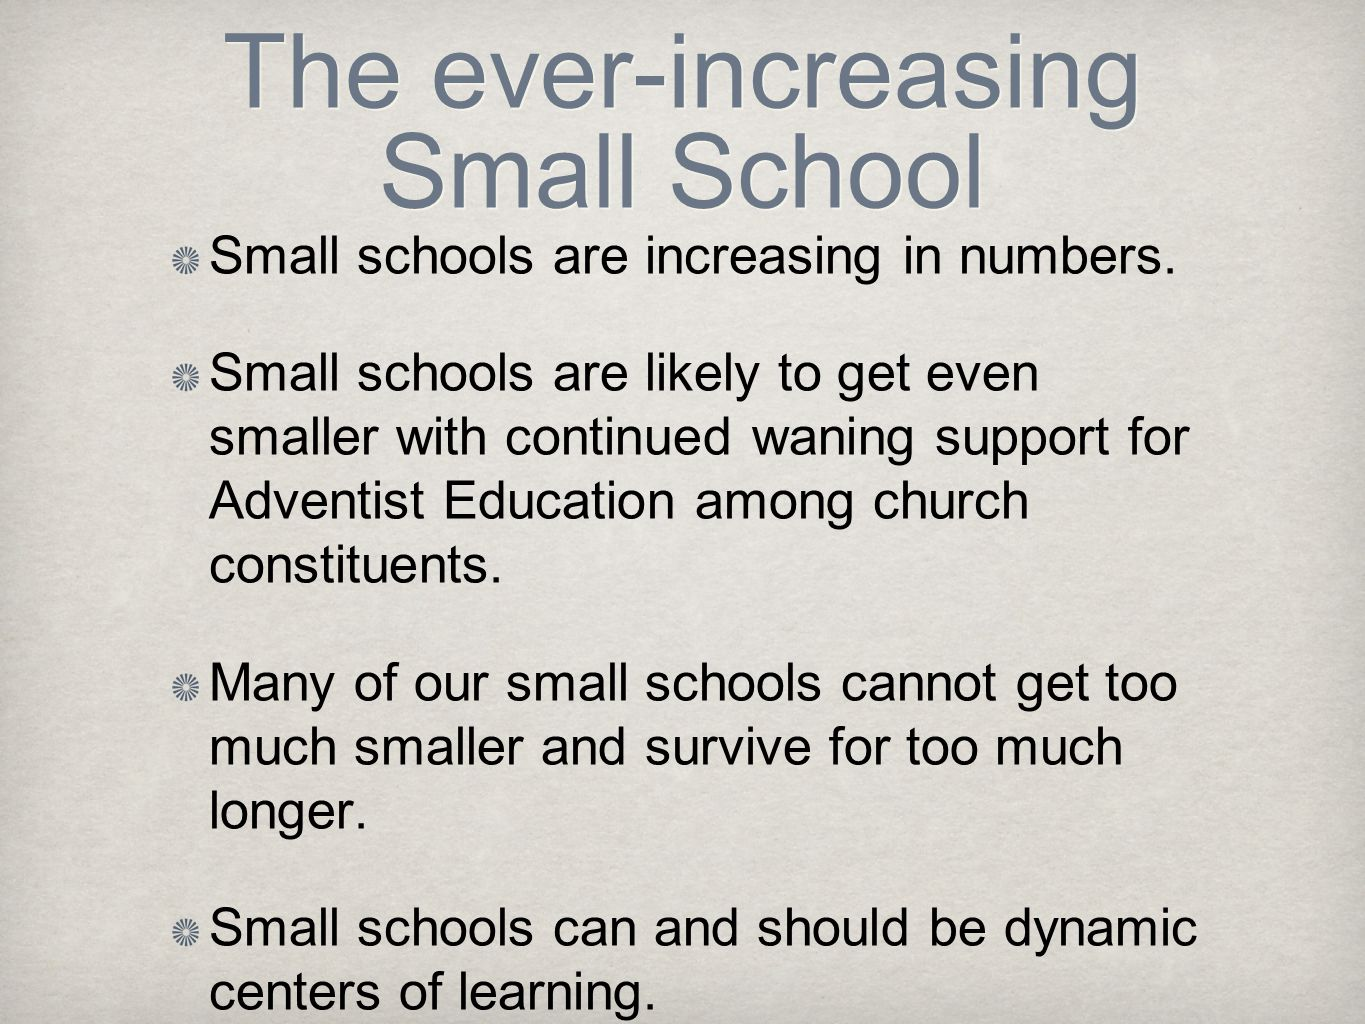 The ever-increasing Small School